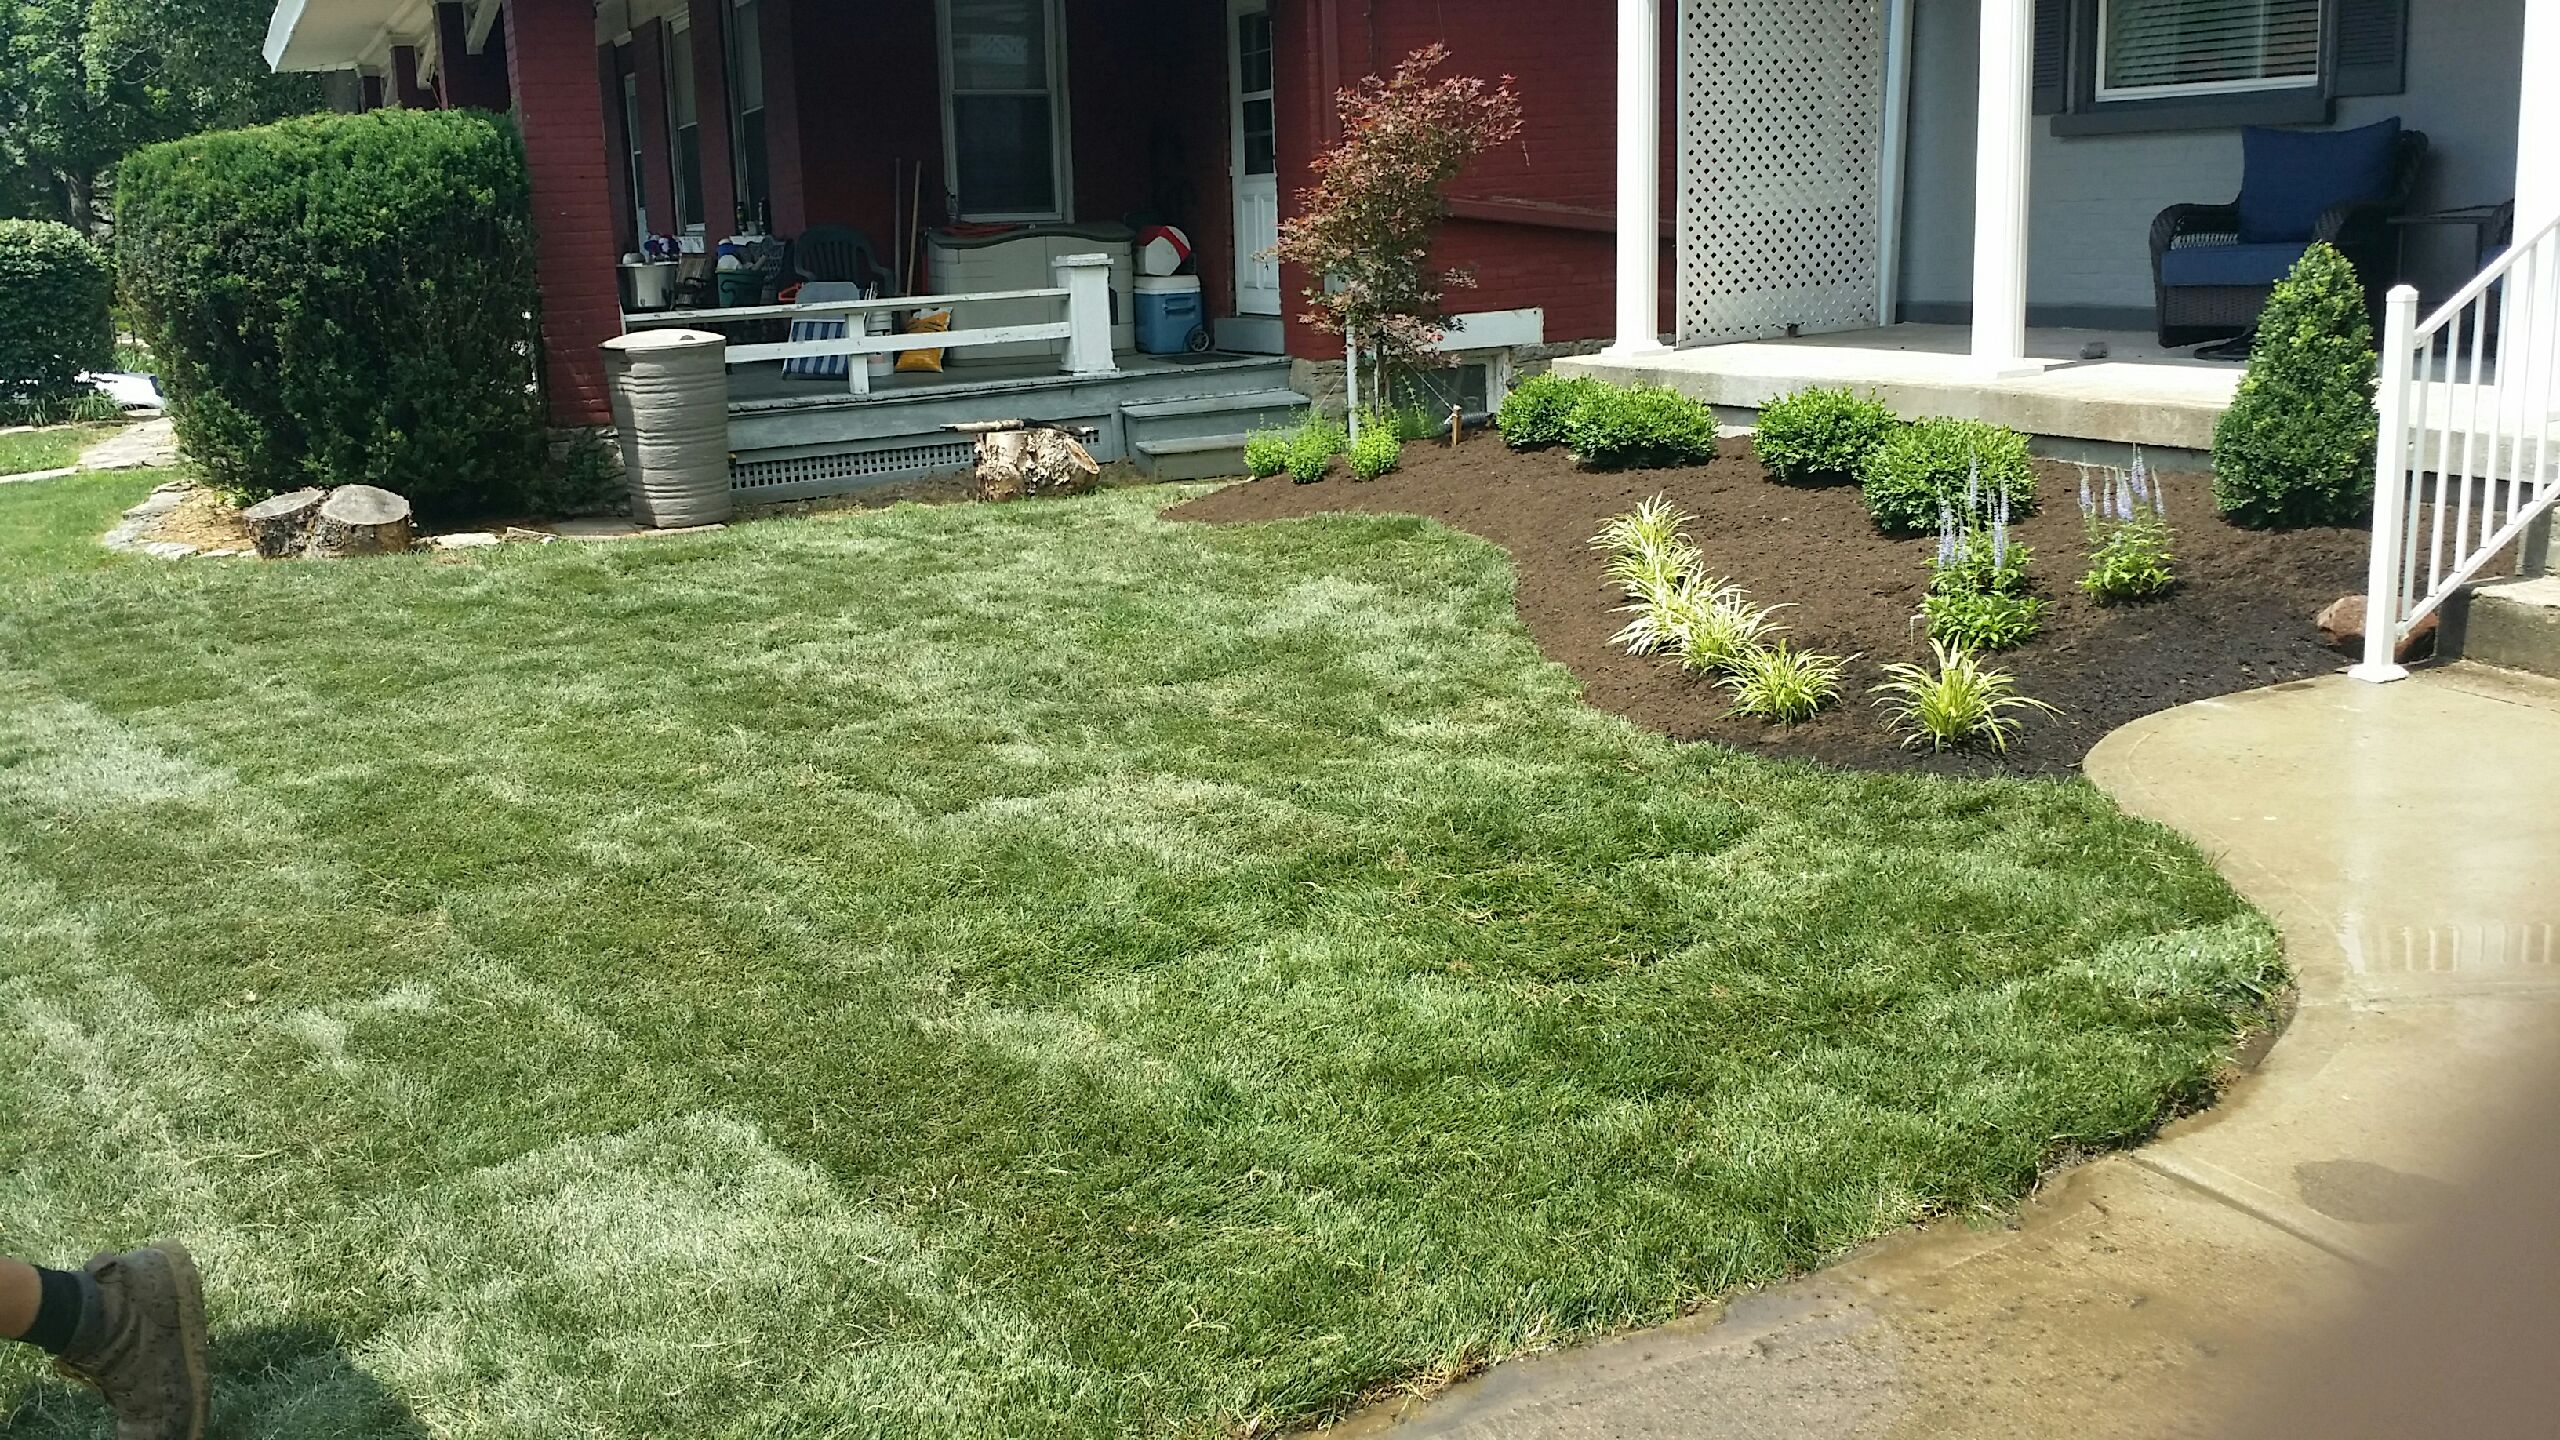 Project Complete New Lawn Landscaping Contributes To City Of Beautiful Homes Brentwood Landscape Design Inc